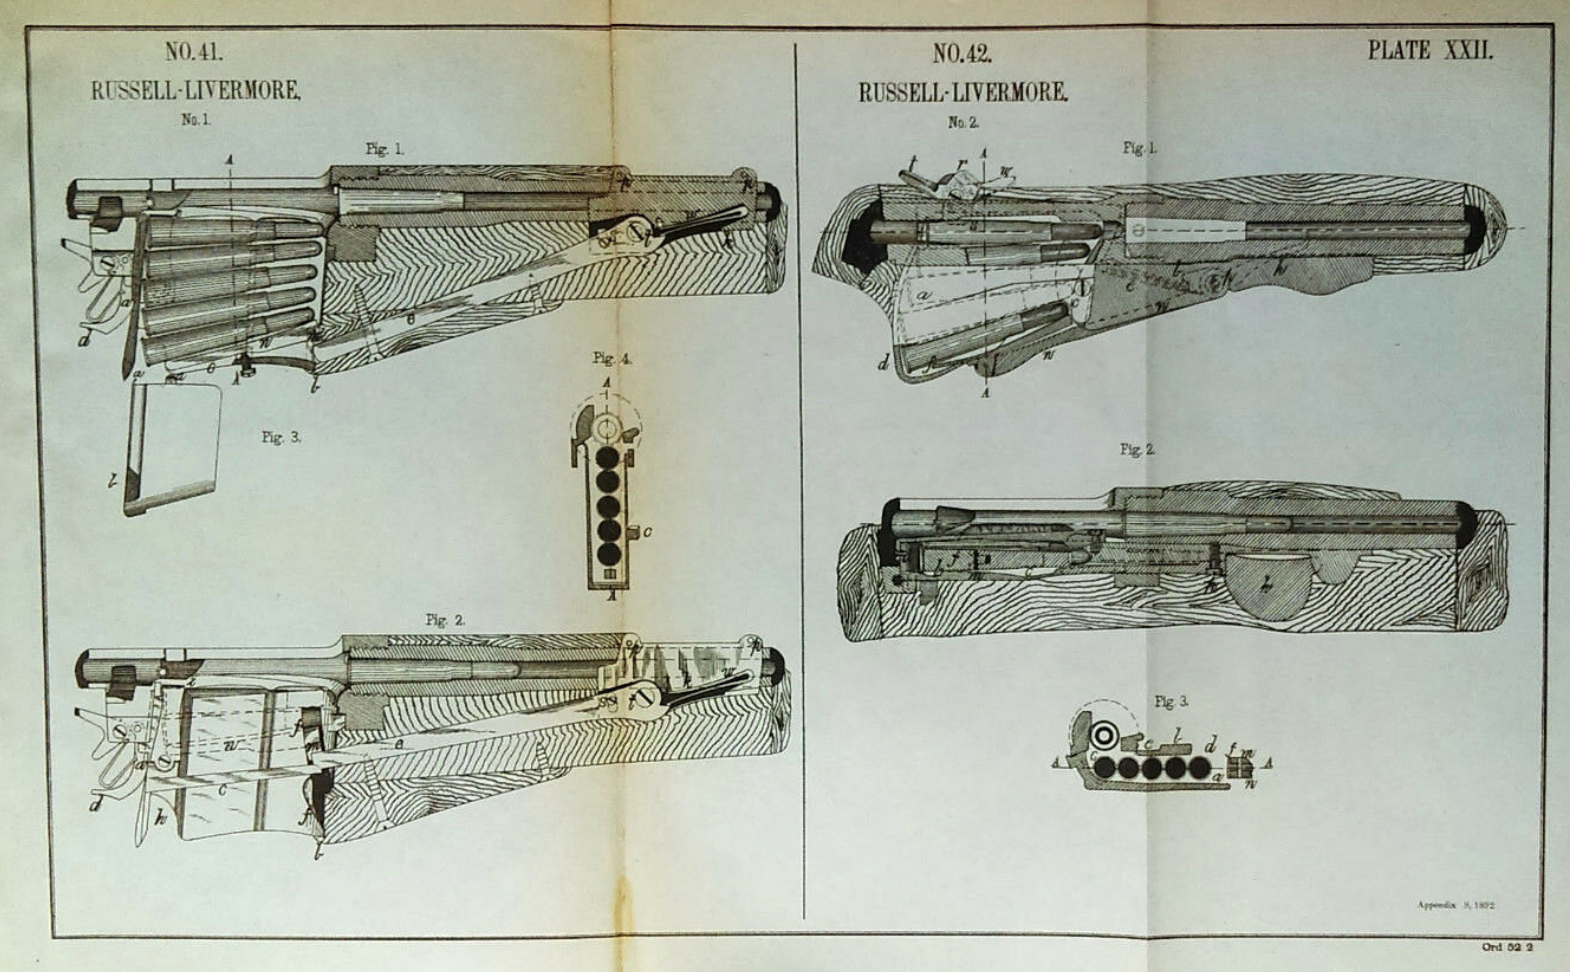 Russell-Livermore rifle